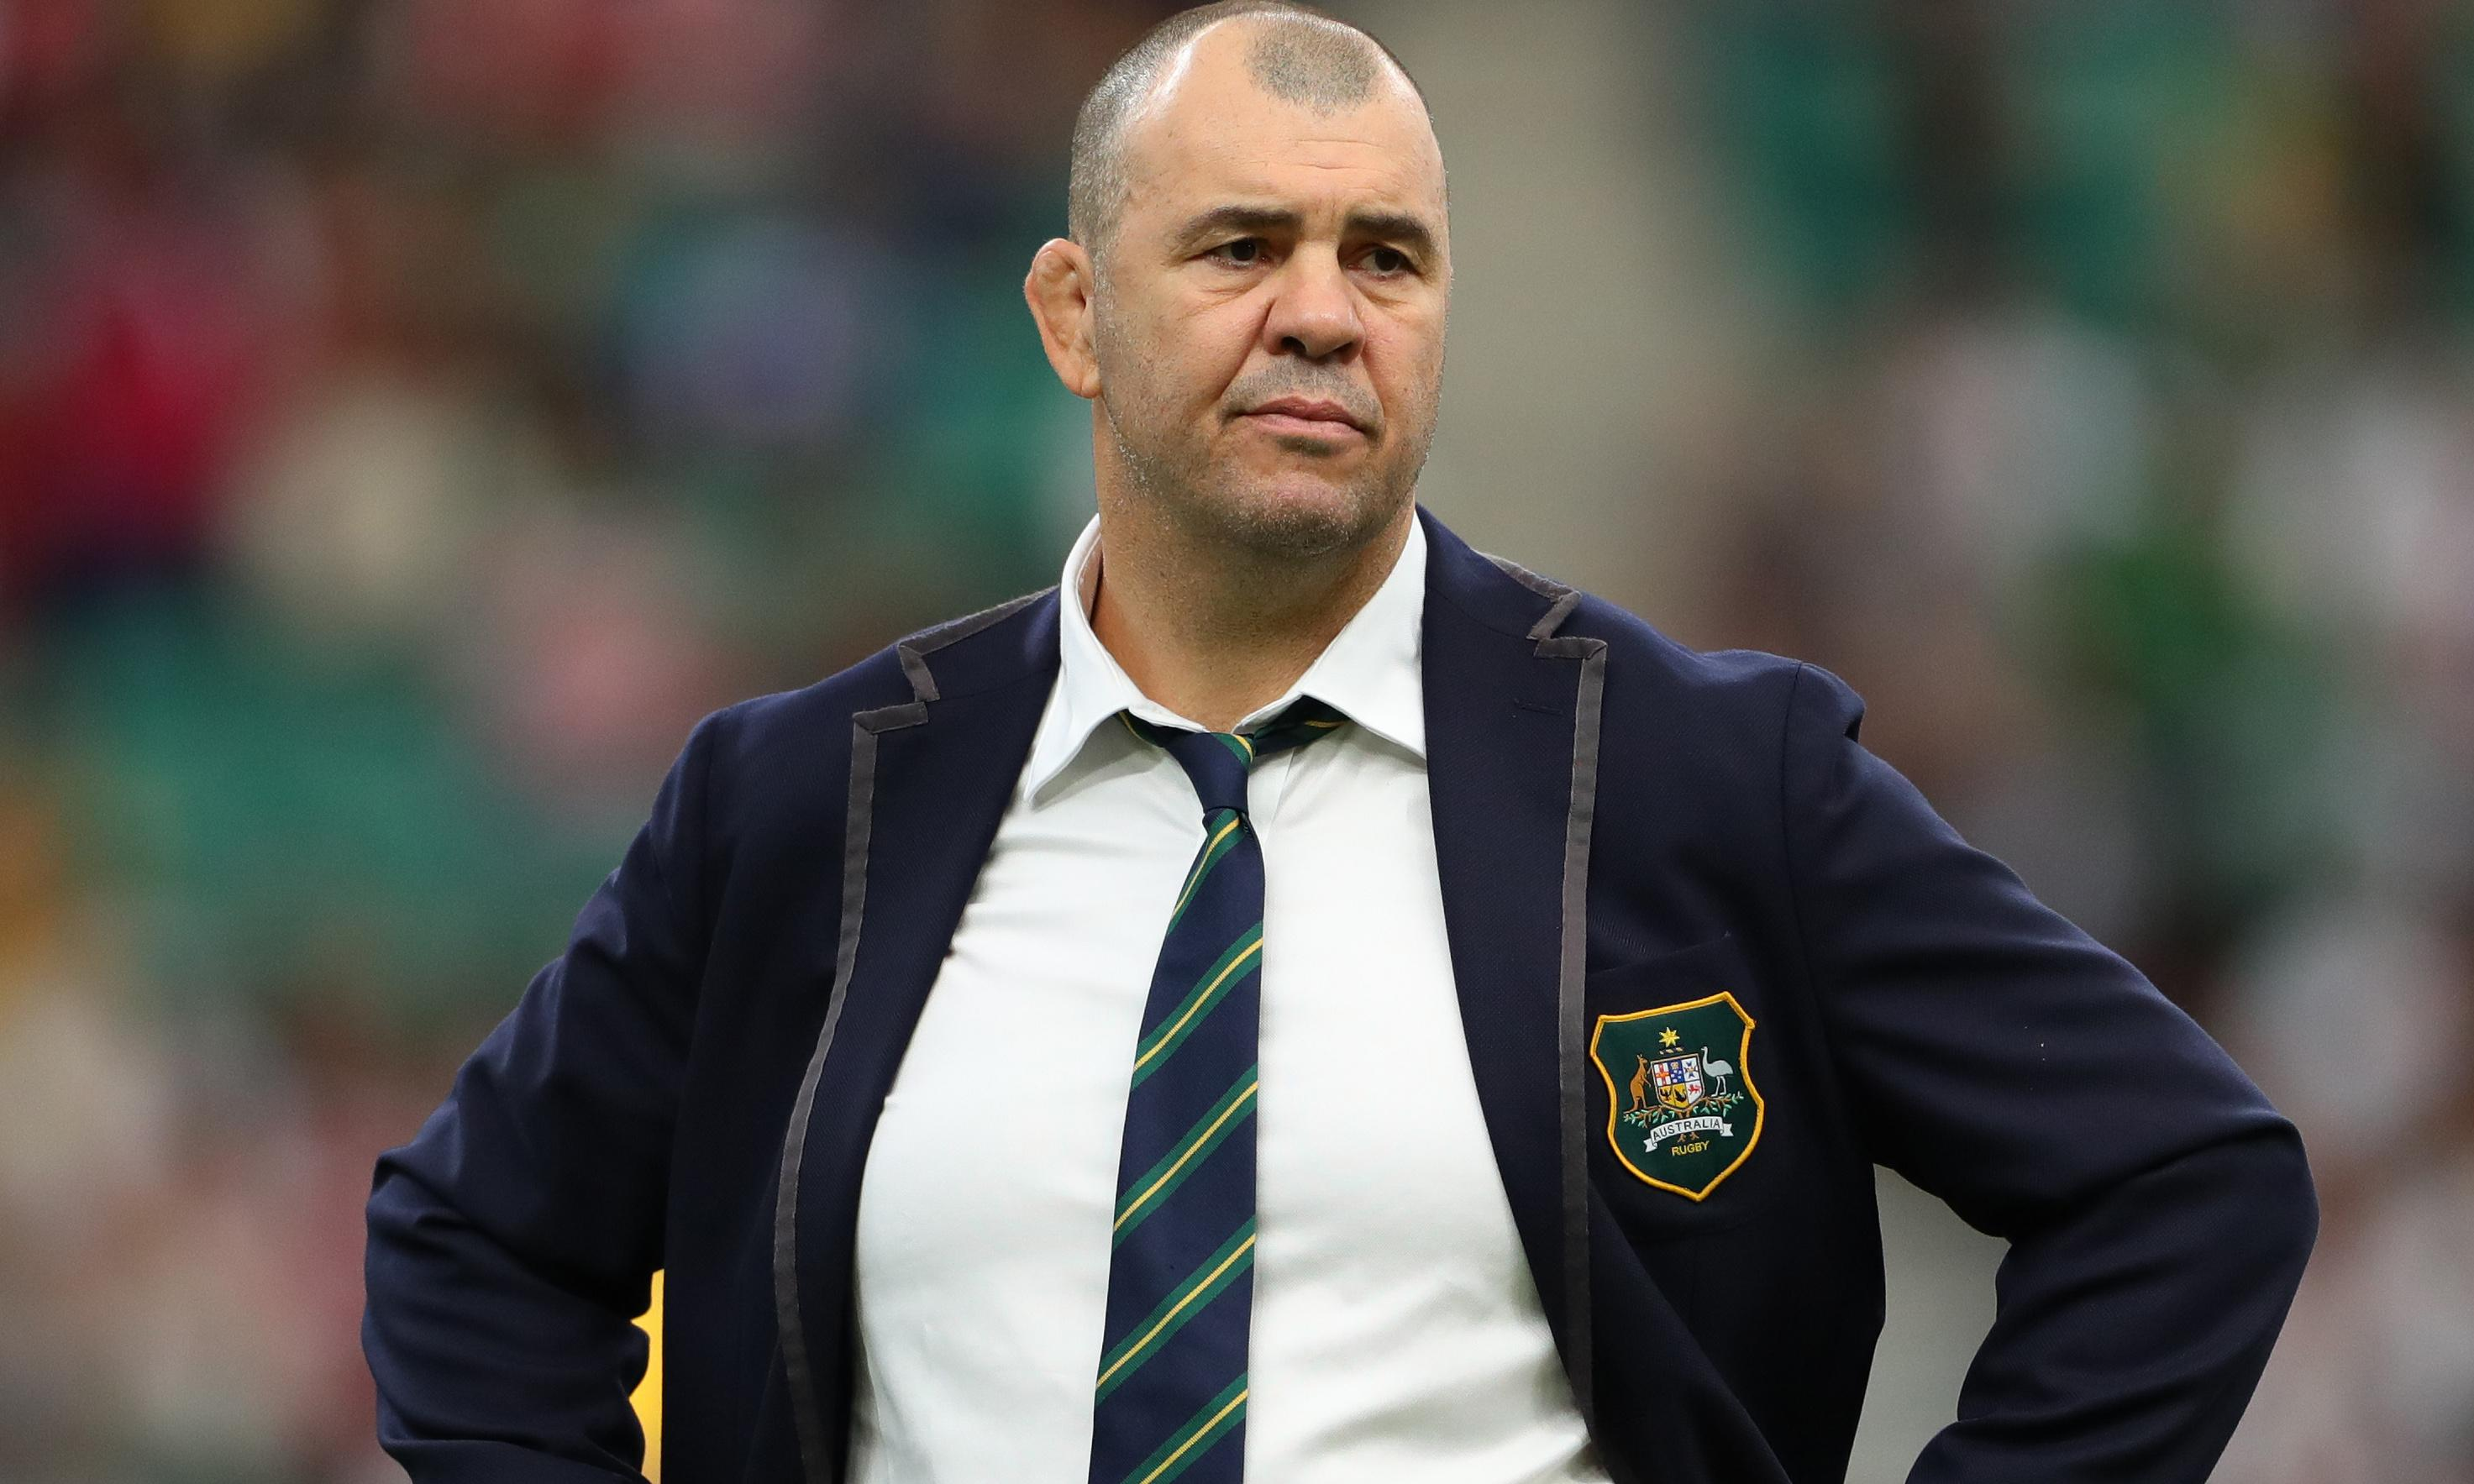 Michael Cheika lifts lid on Rugby Australia after quitting as head coach